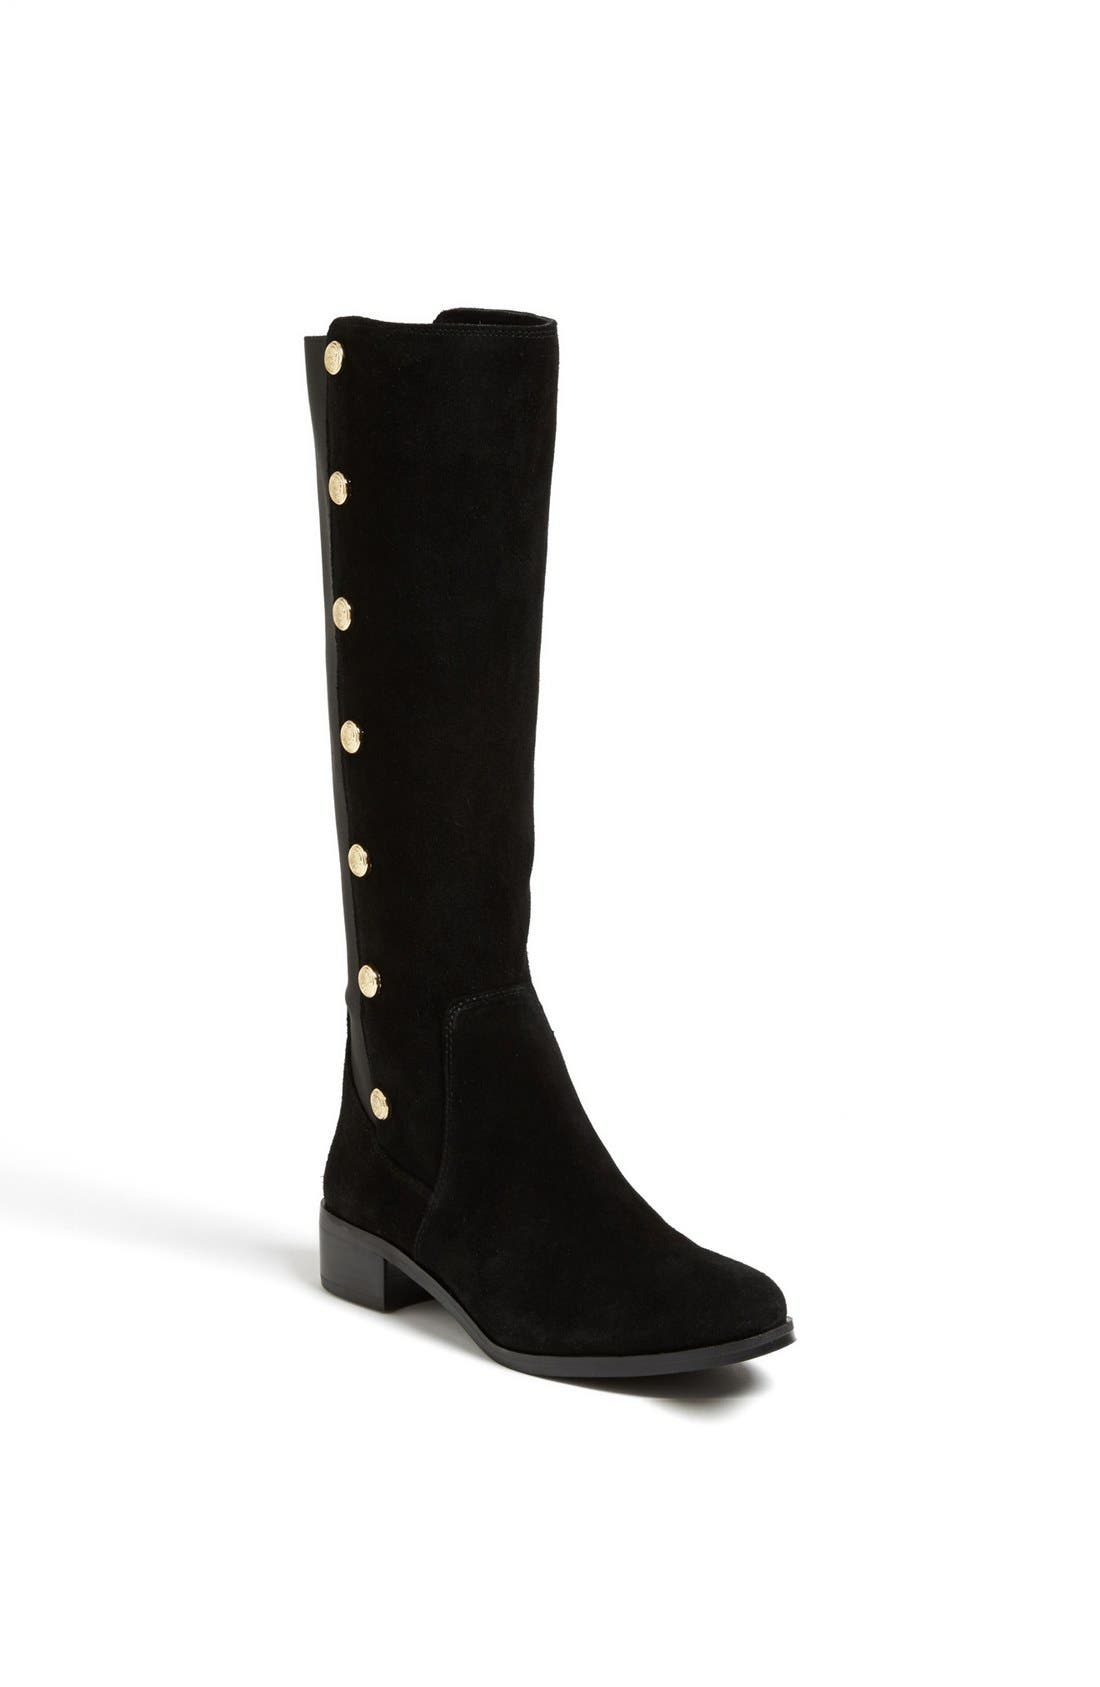 Alternate Image 1 Selected - Vince Camuto 'Vacilla' Boot